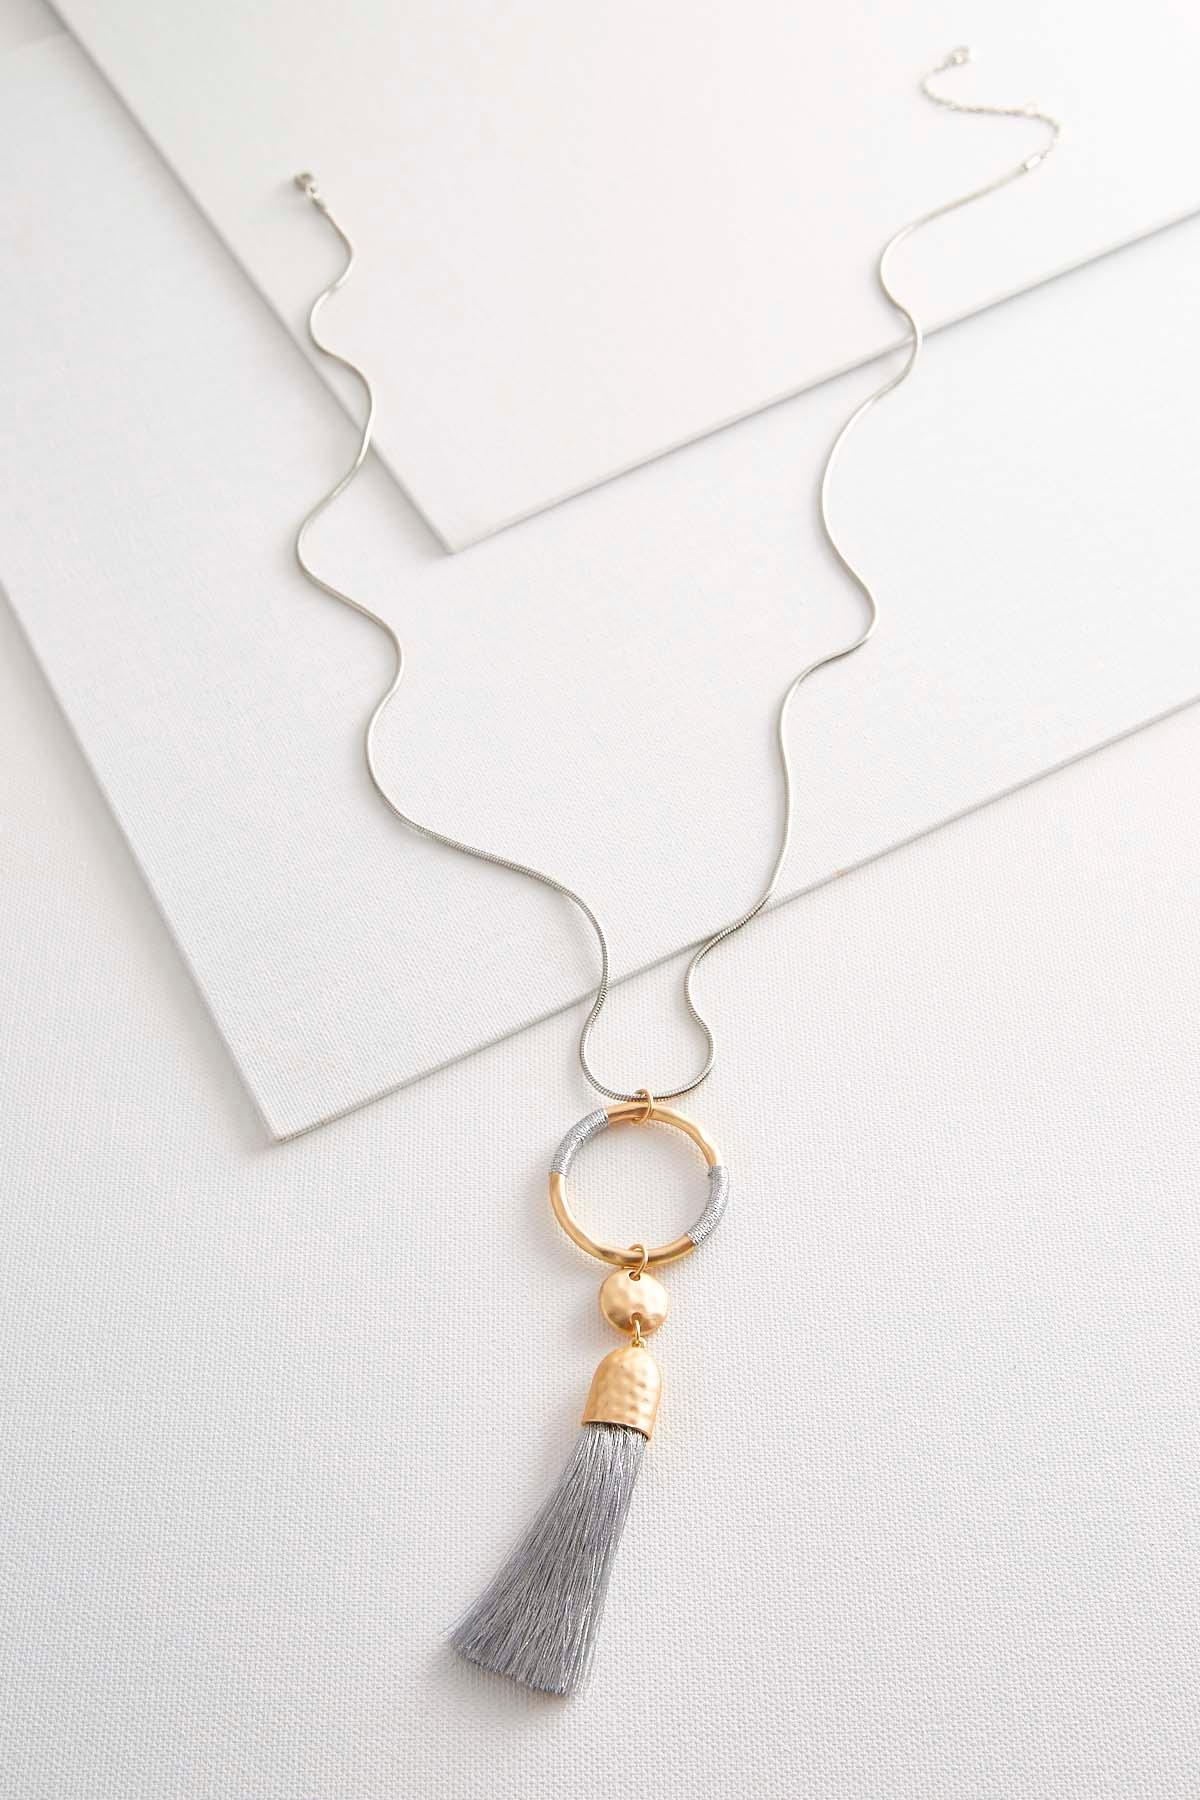 Two- Toned Tassel Necklace